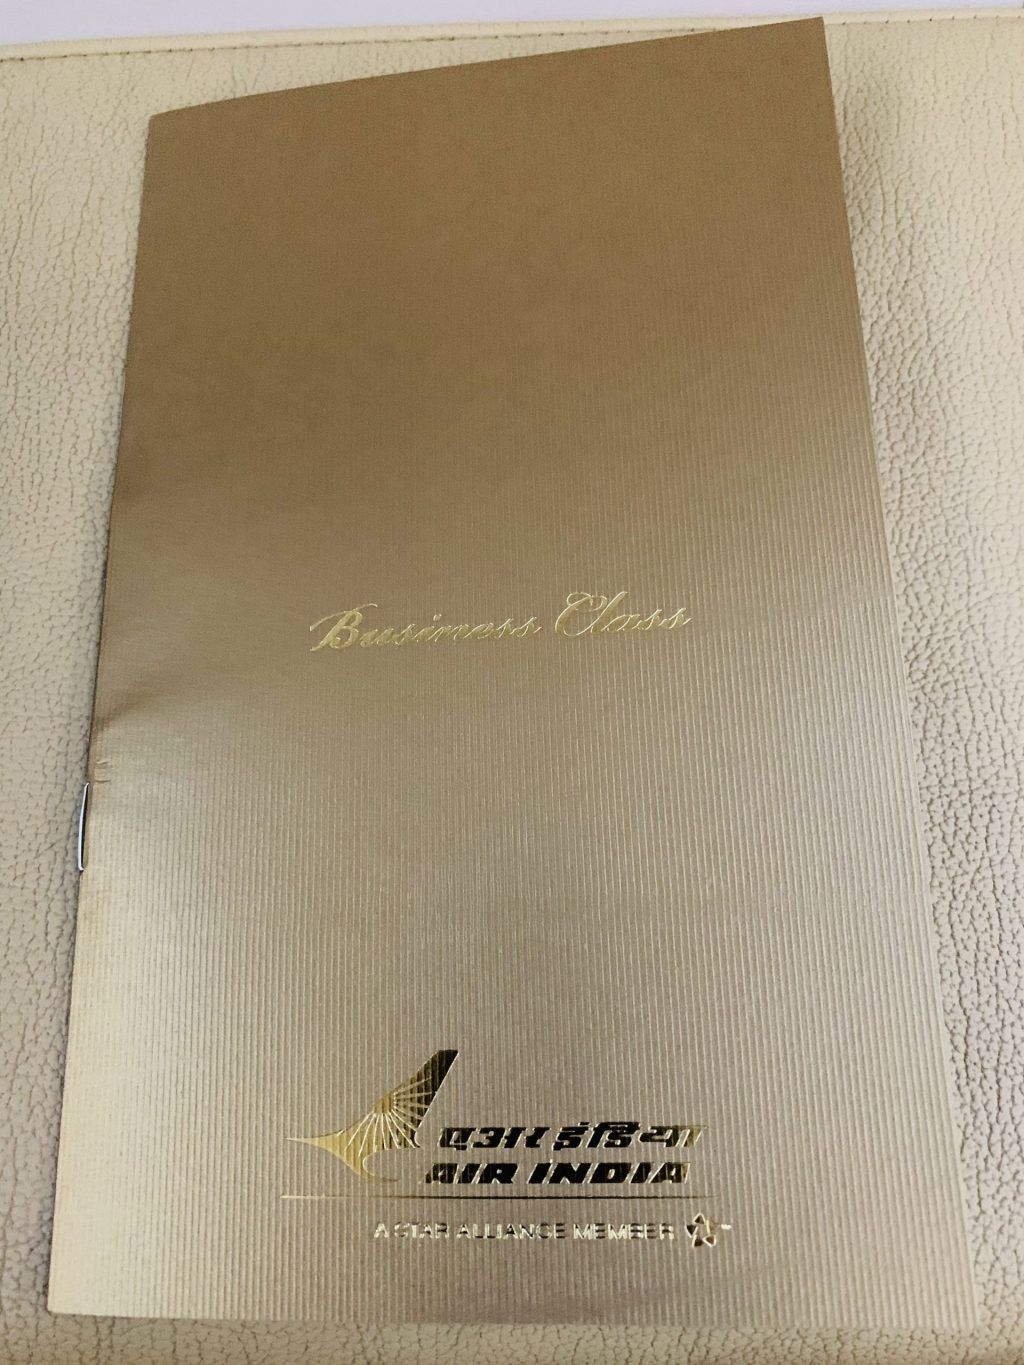 Air India - Fly, menu - rejser